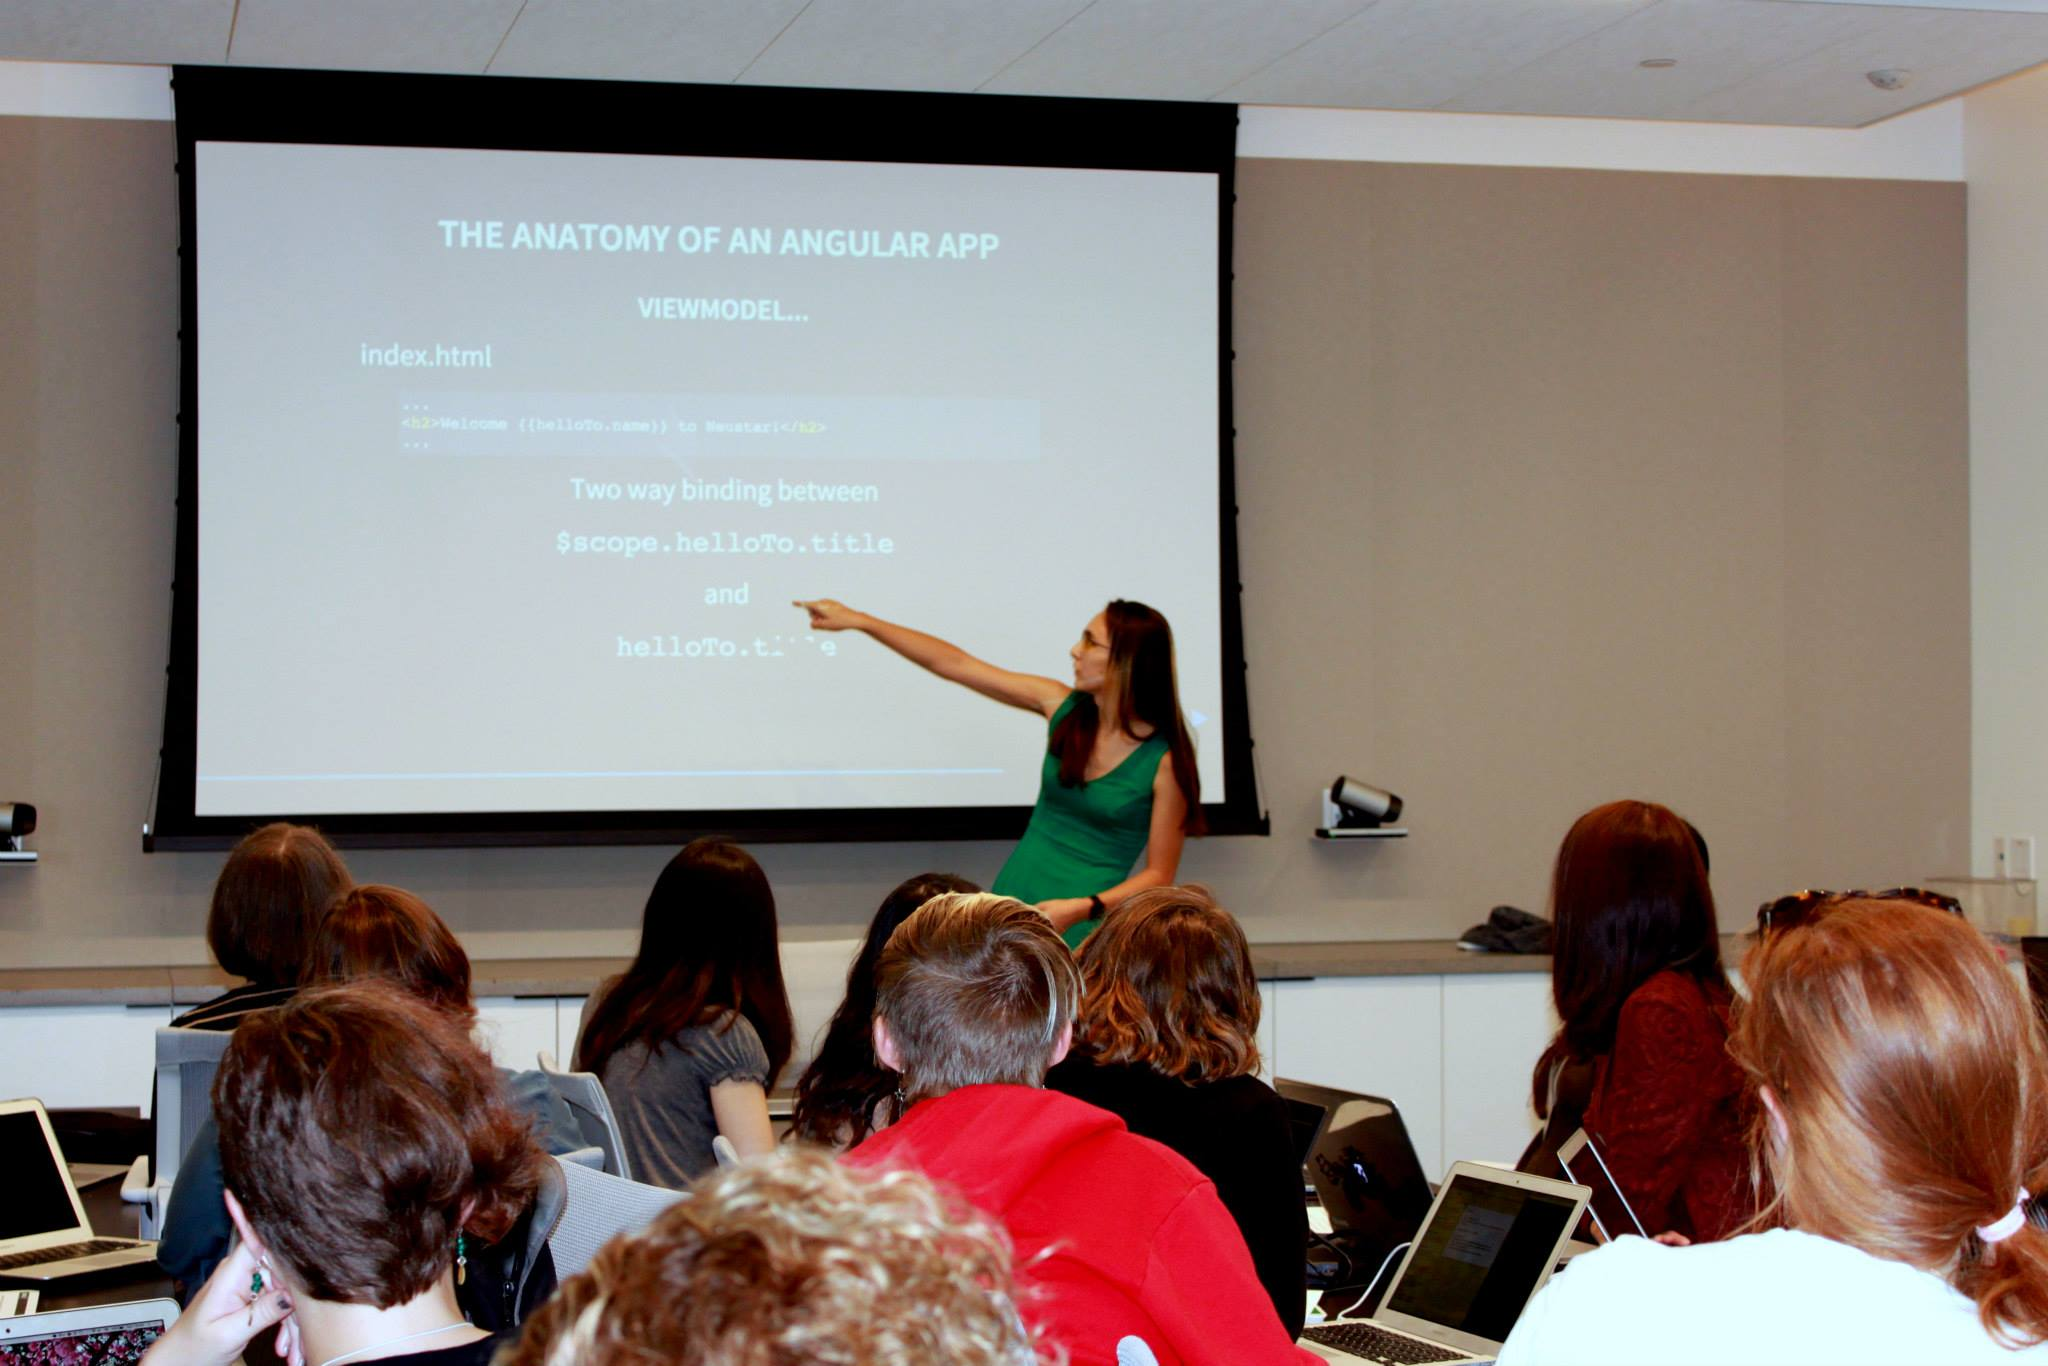 Kwyn Meagher speaks about Angular and Flask at Neustar to Hackbright fellows